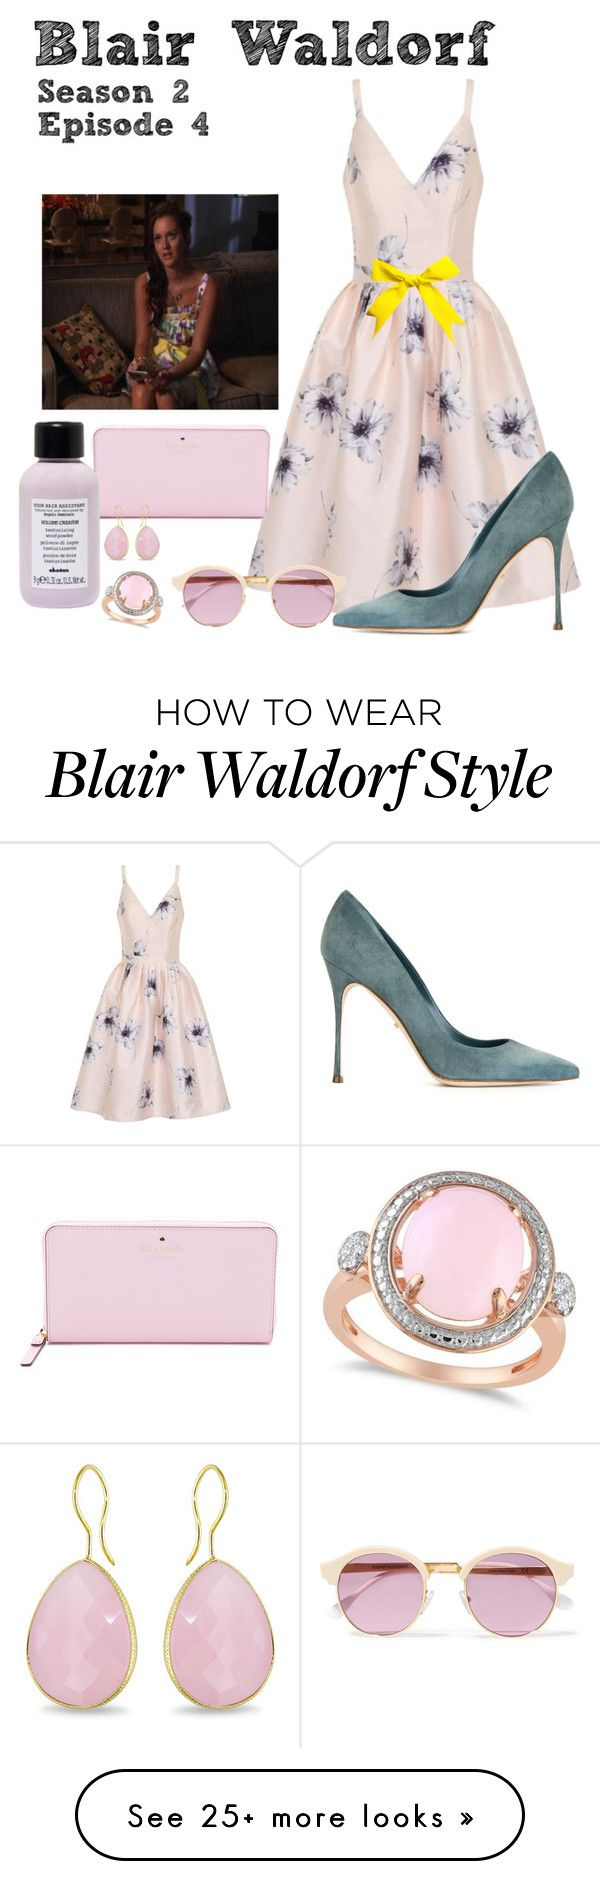 """Gossip Girl - Blair Waldorf - Season 2 Episode 4"" by deathcab4kuz on Polyvore featuring Chi Chi, Sergio Rossi, Sheriff&Cherry, Kate Spade, Davines, Ice and Allurez"